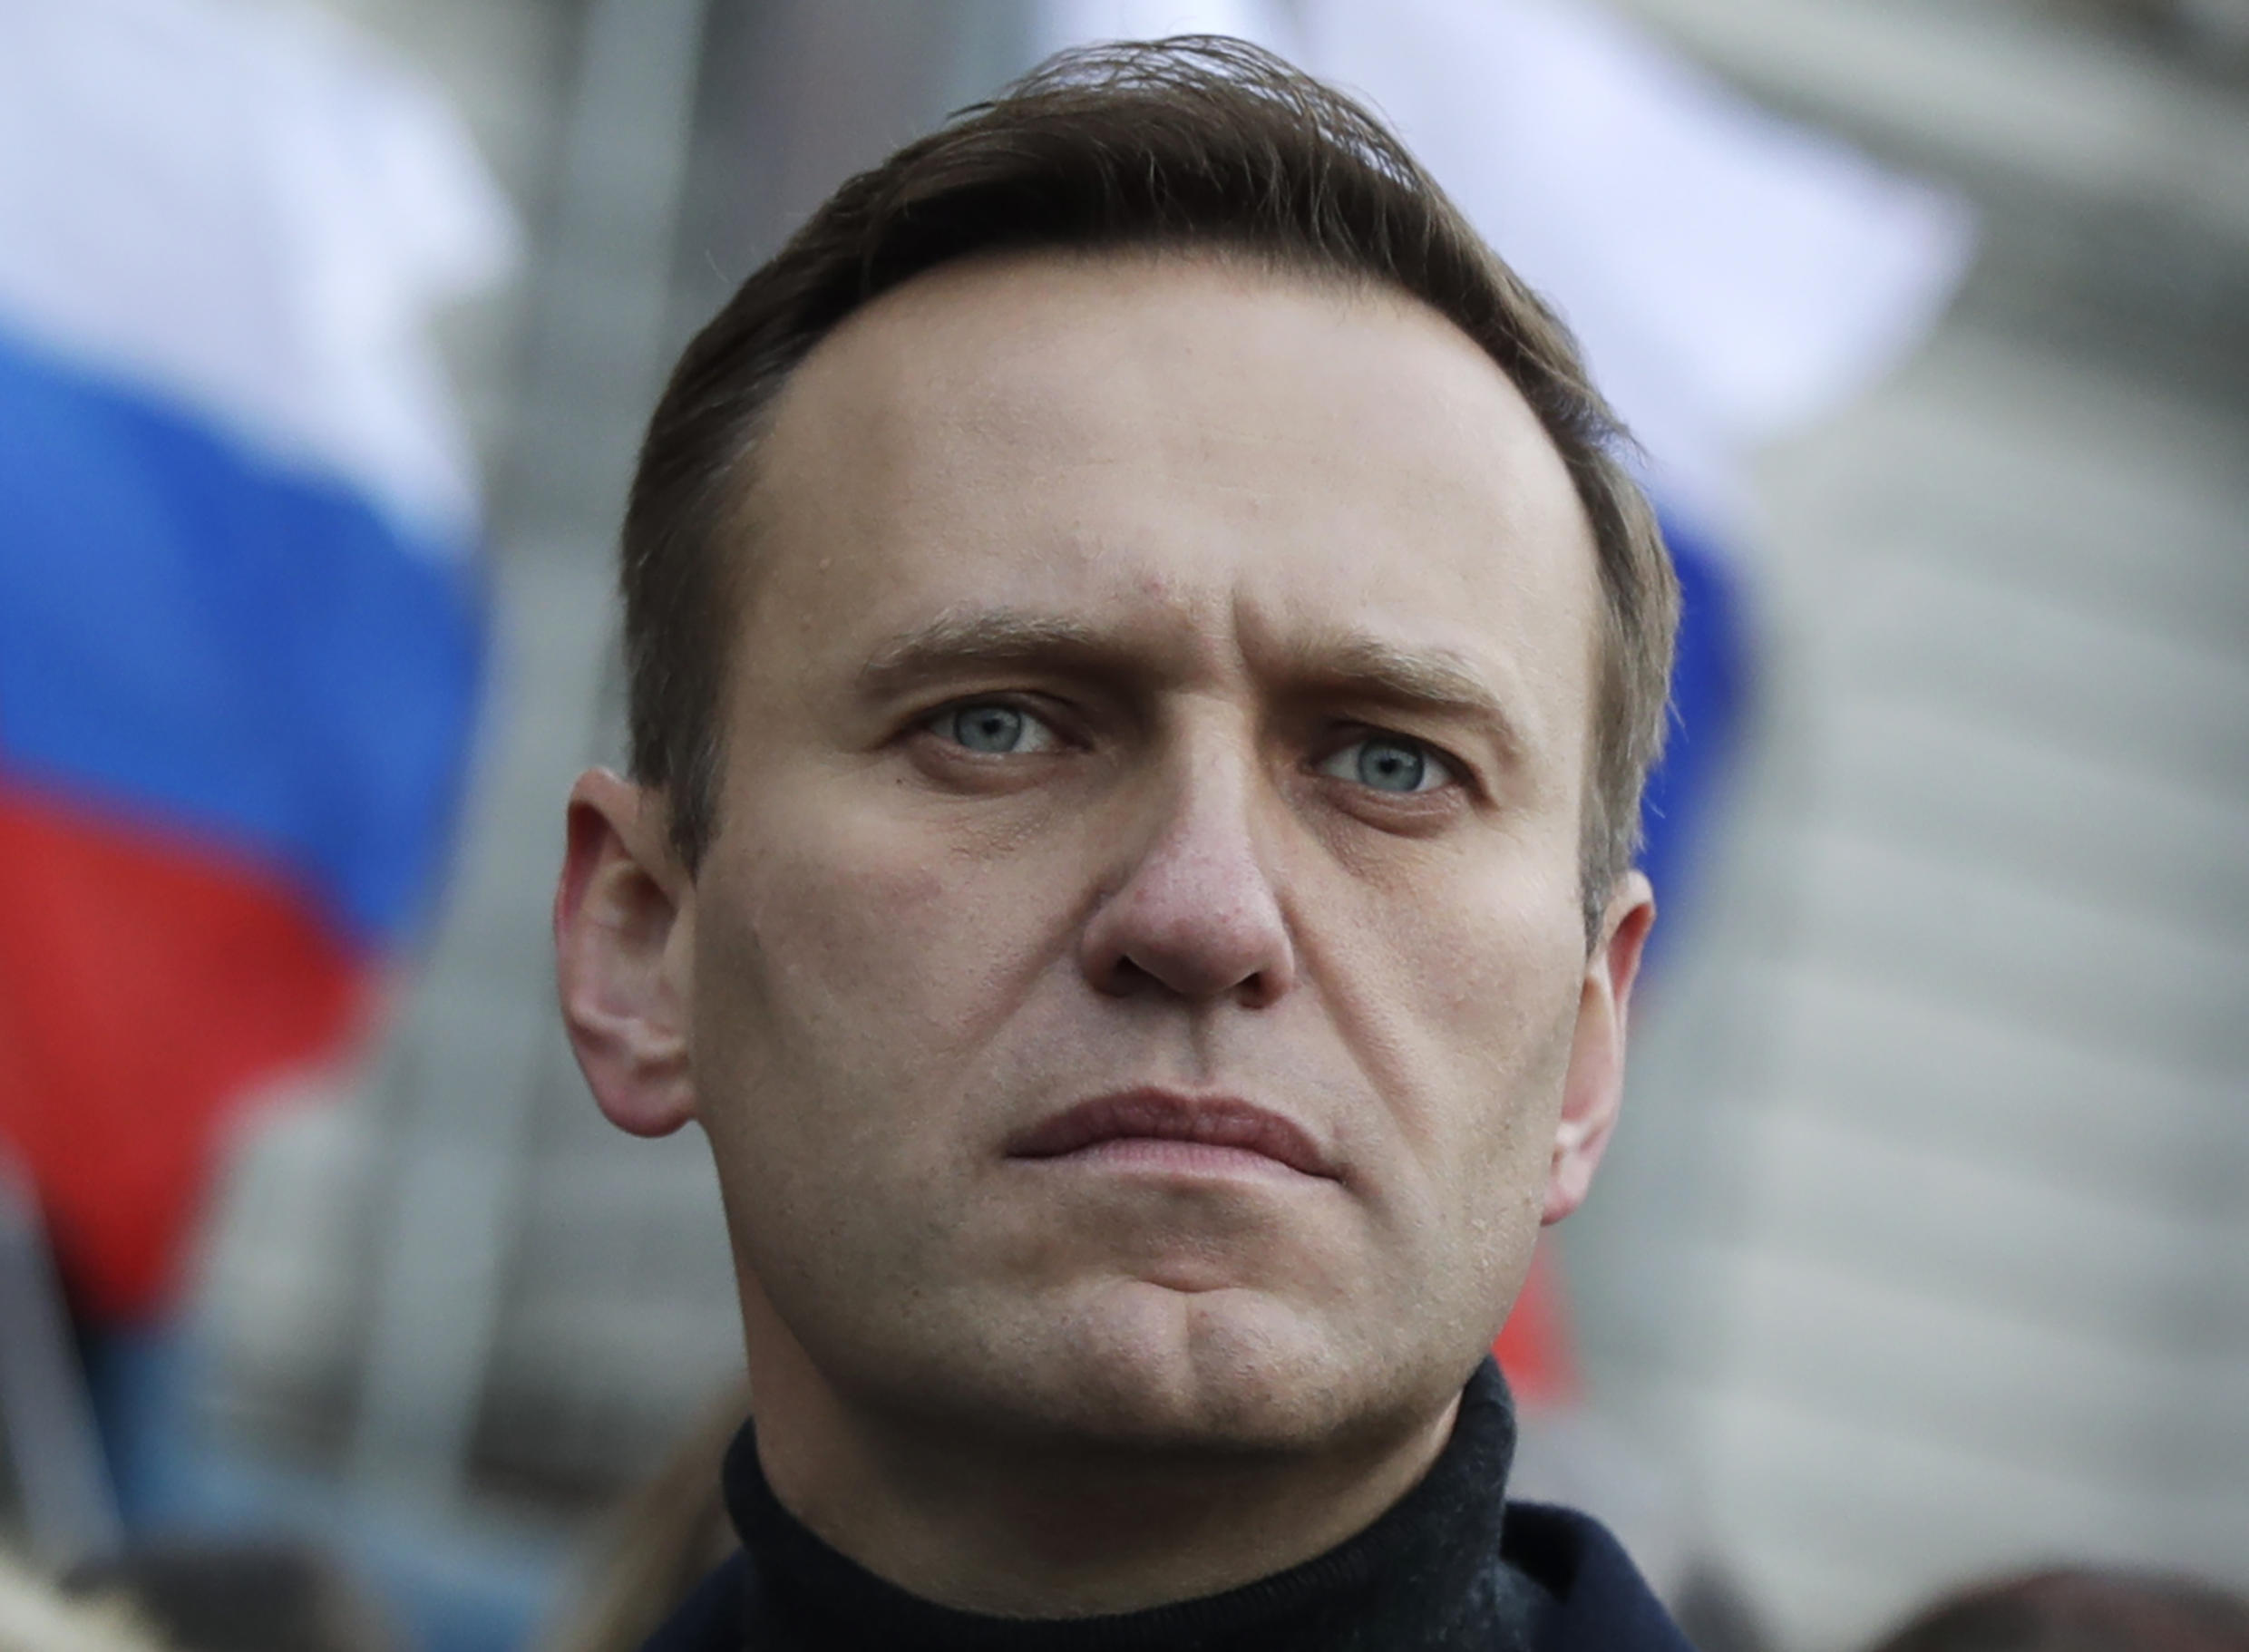 Alexei Navalny participating in a march to commemorate opposition leader Boris Nemtsov in Mosco on 29 February 2020.